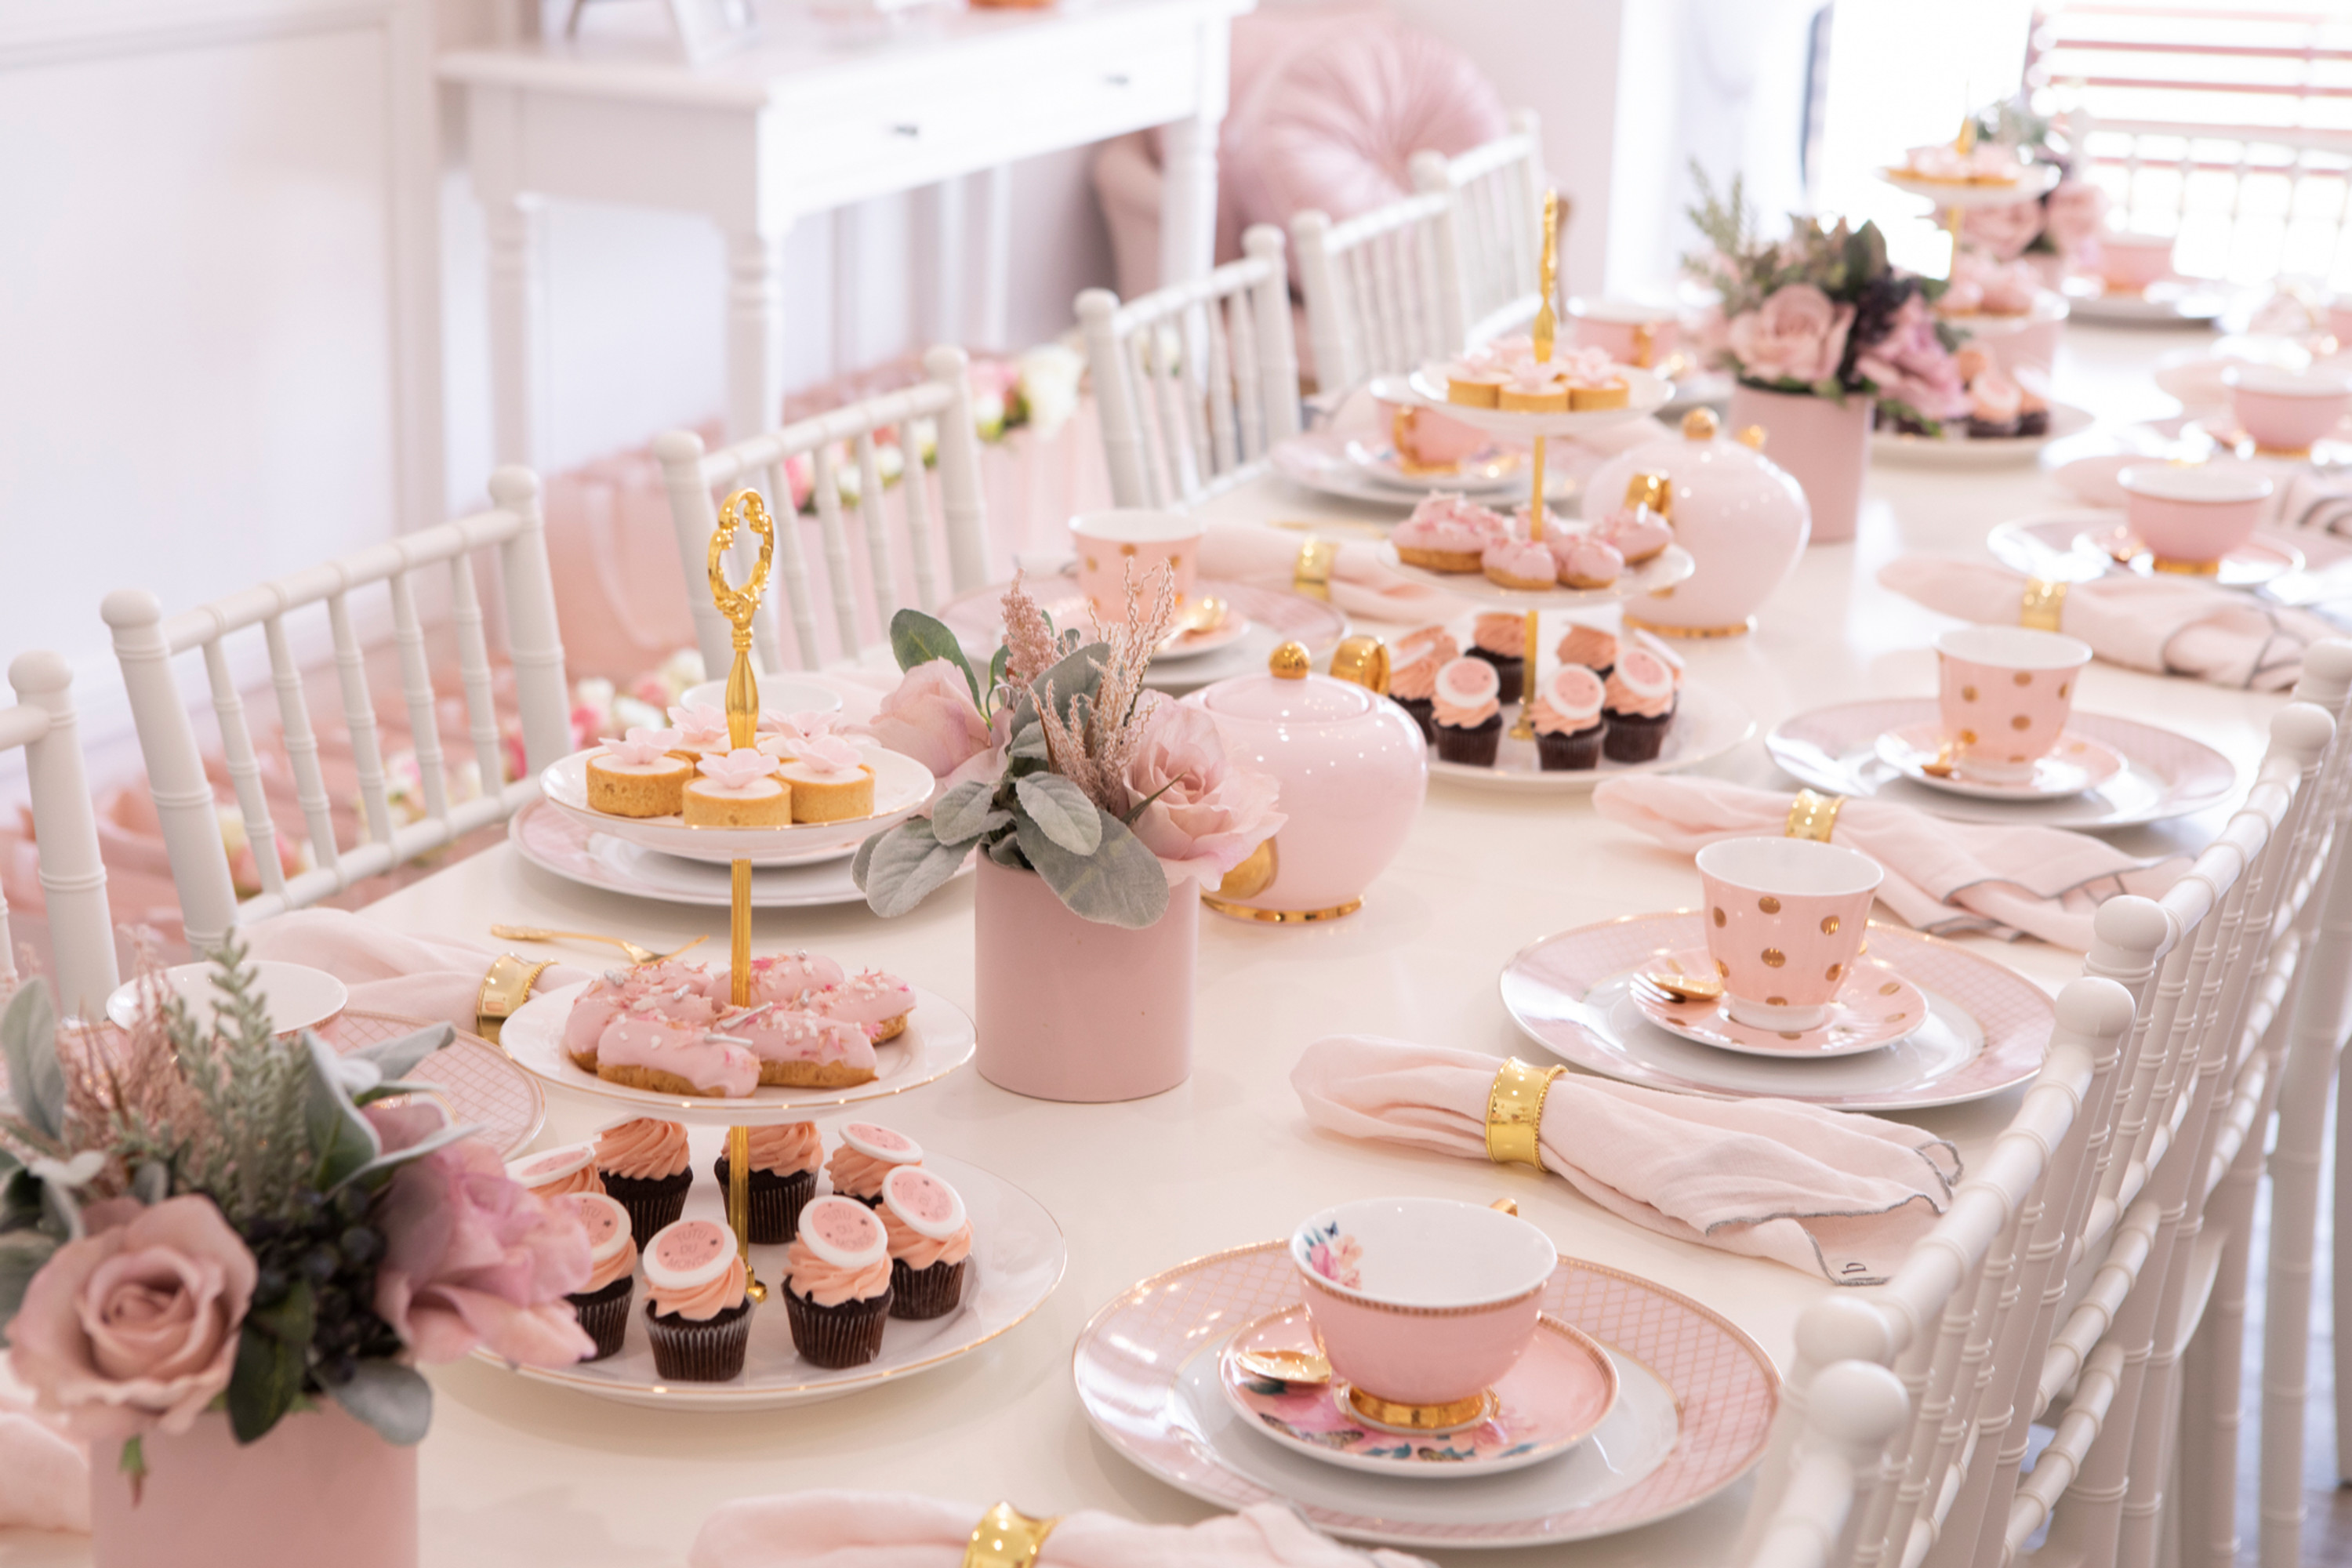 Ultimate High Tea party $650 (+ Gst)